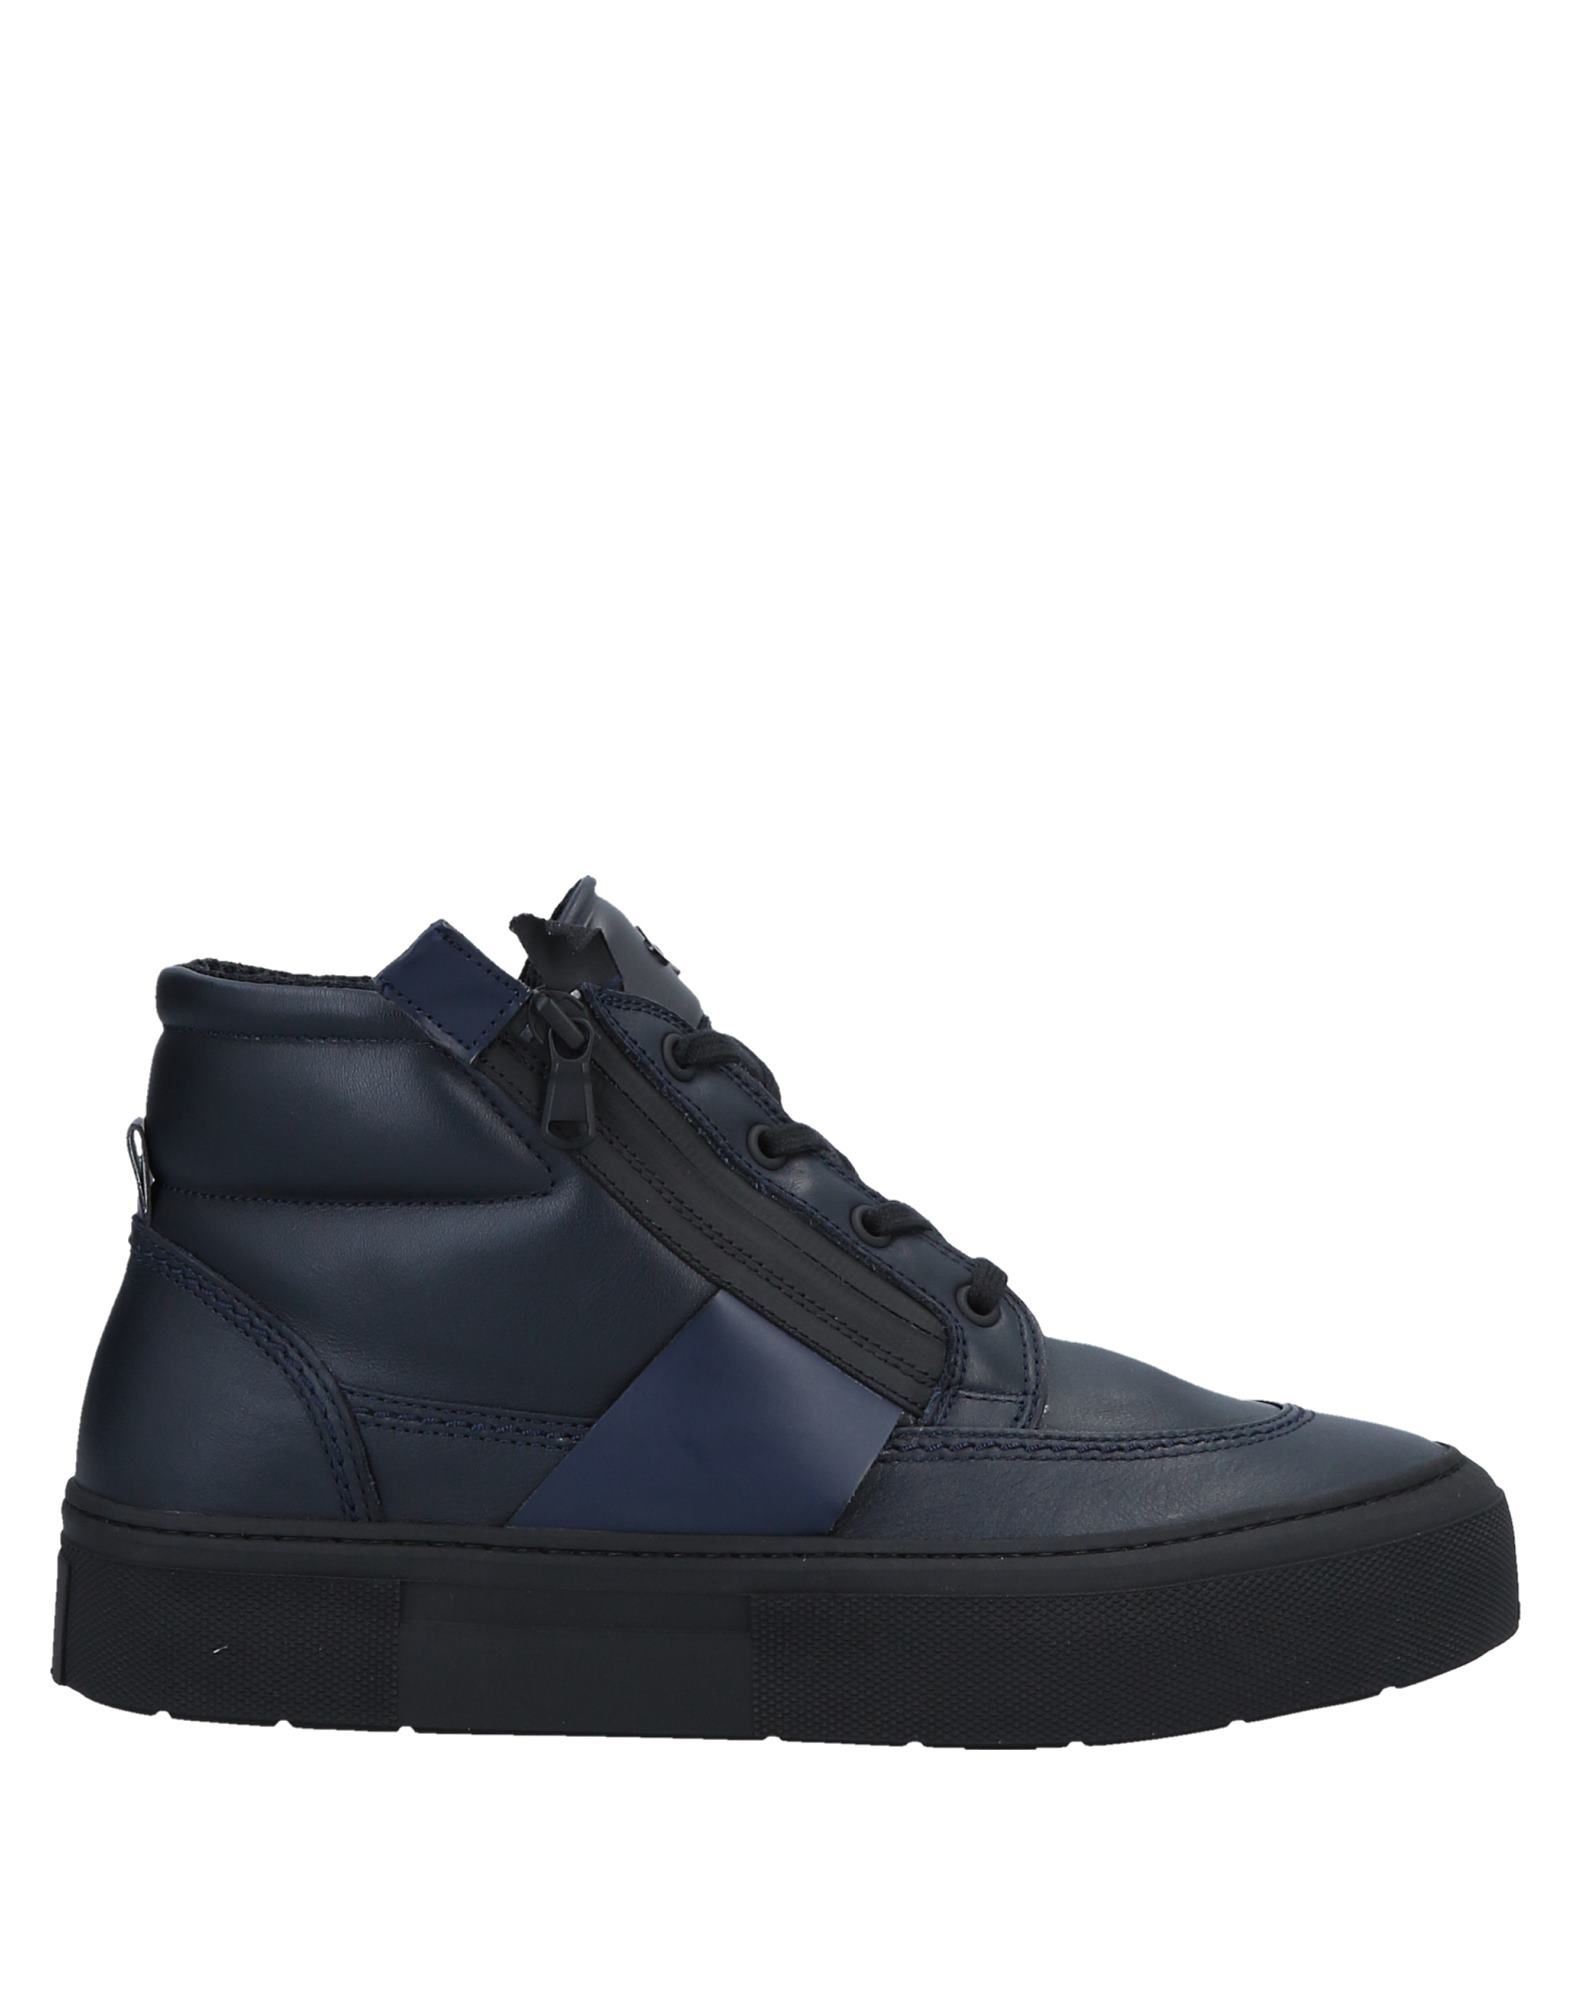 O.X.S. Sneakers - Canada Men O.X.S. Sneakers online on  Canada - - 11573818XF f531f9